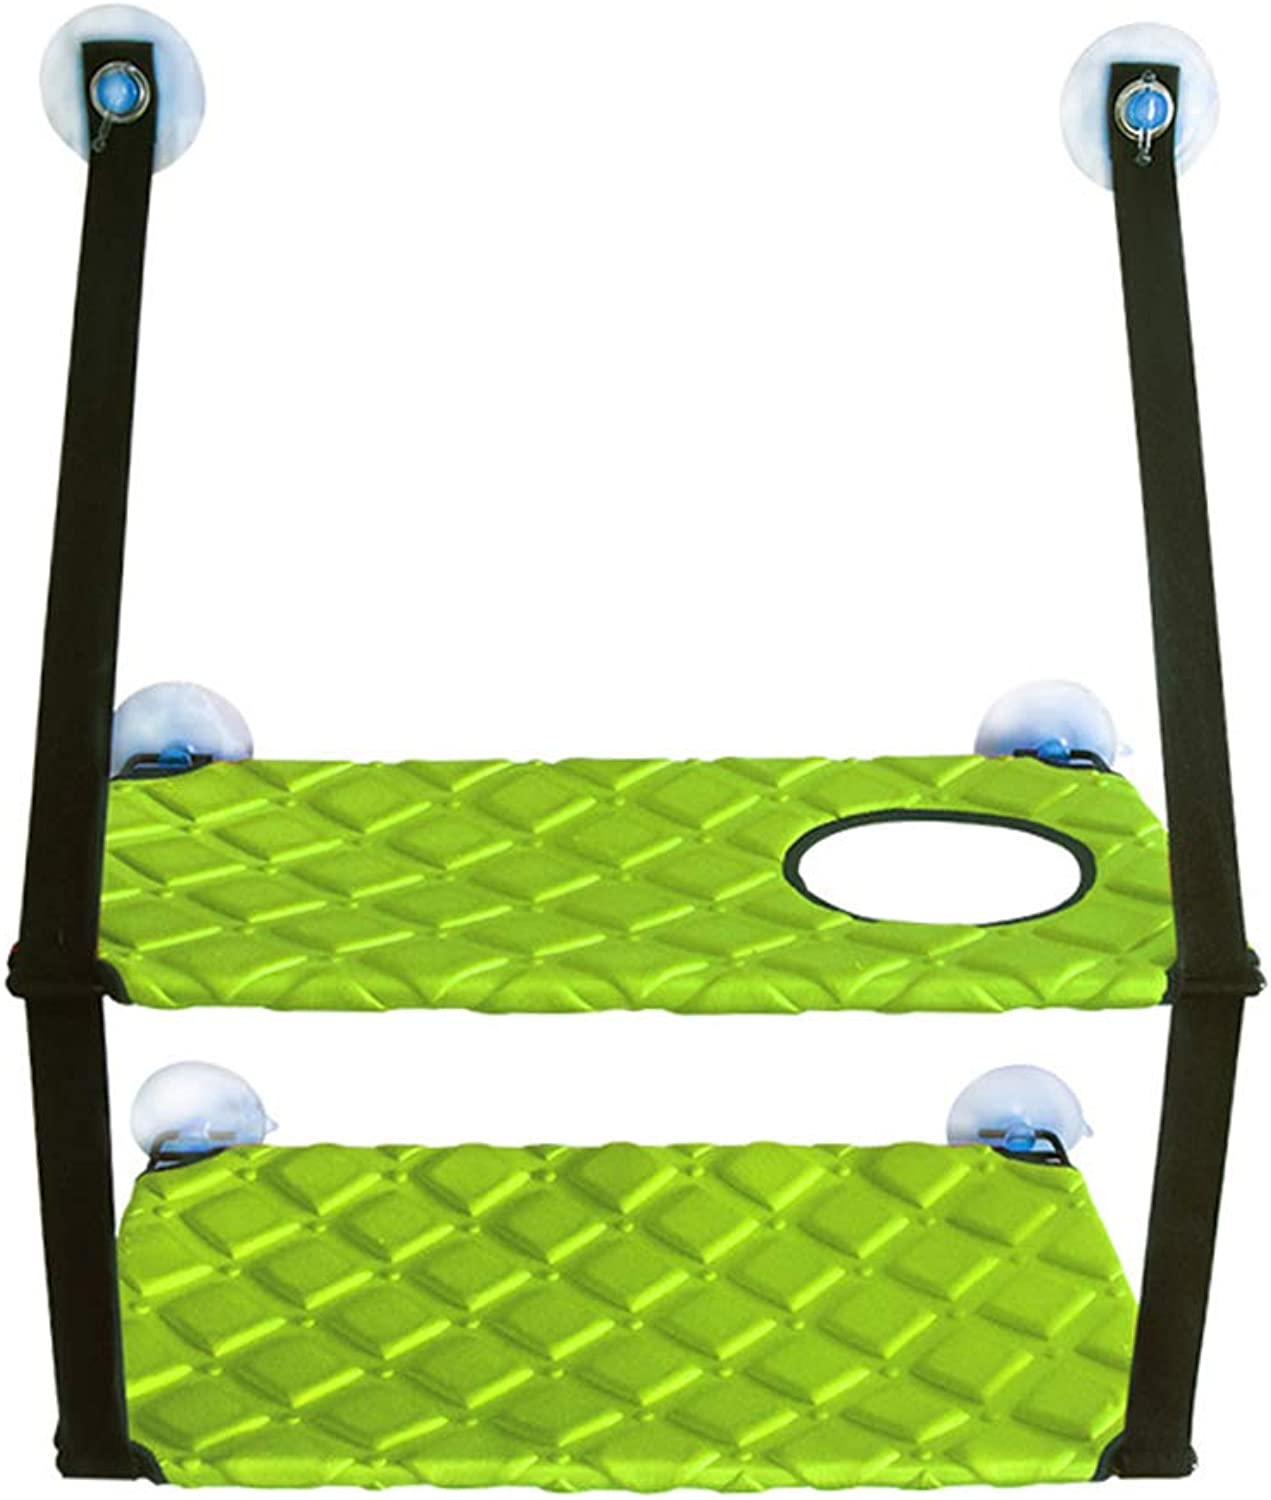 Cat Hammock Sturdy Construction, Pet Perch Detachable and Washable, Cat Sleeping Bed with Heavy Duty Suction Cups for Sunbath,Green,Double